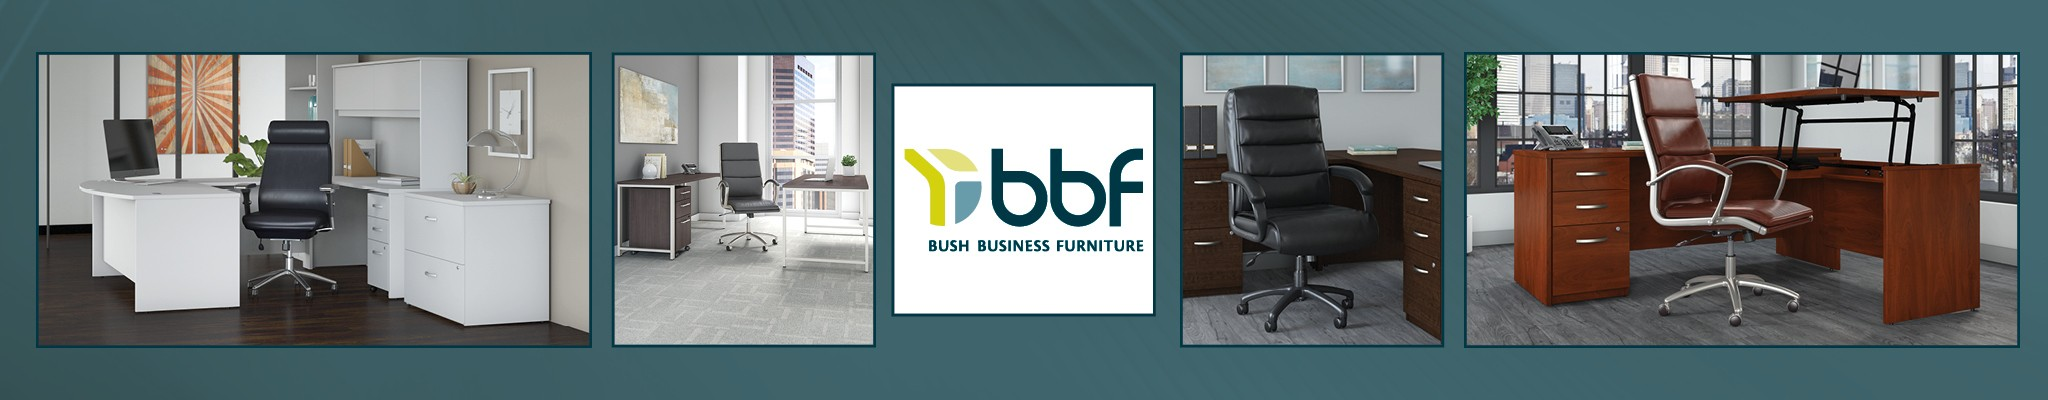 Bush Business Furniture Linkedin